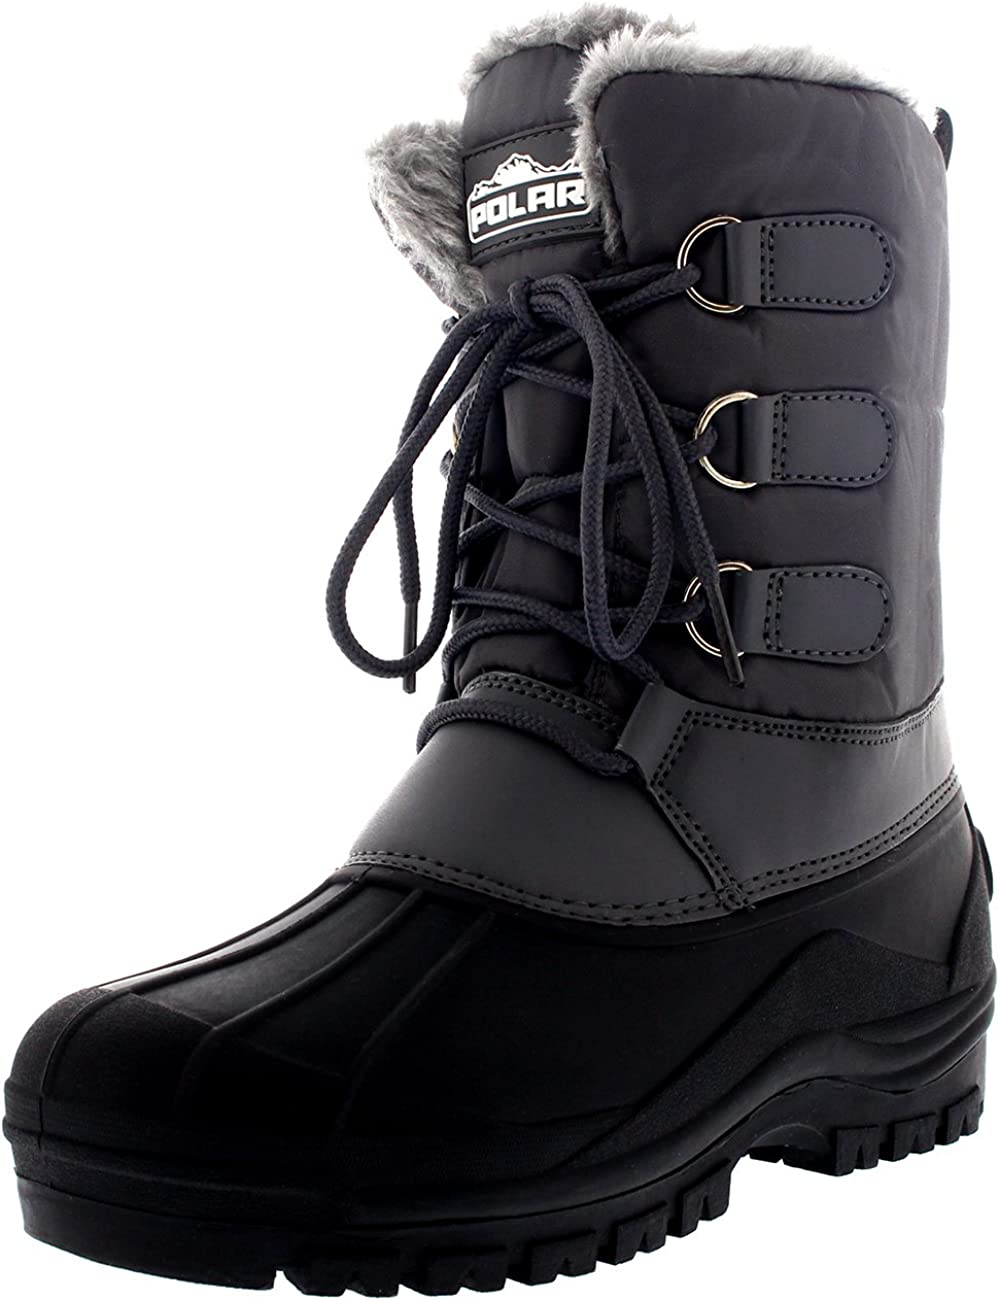 POLAR Womens Hiking Duck Winter Walking Mid Calf Muck Thermal Quilted Boots